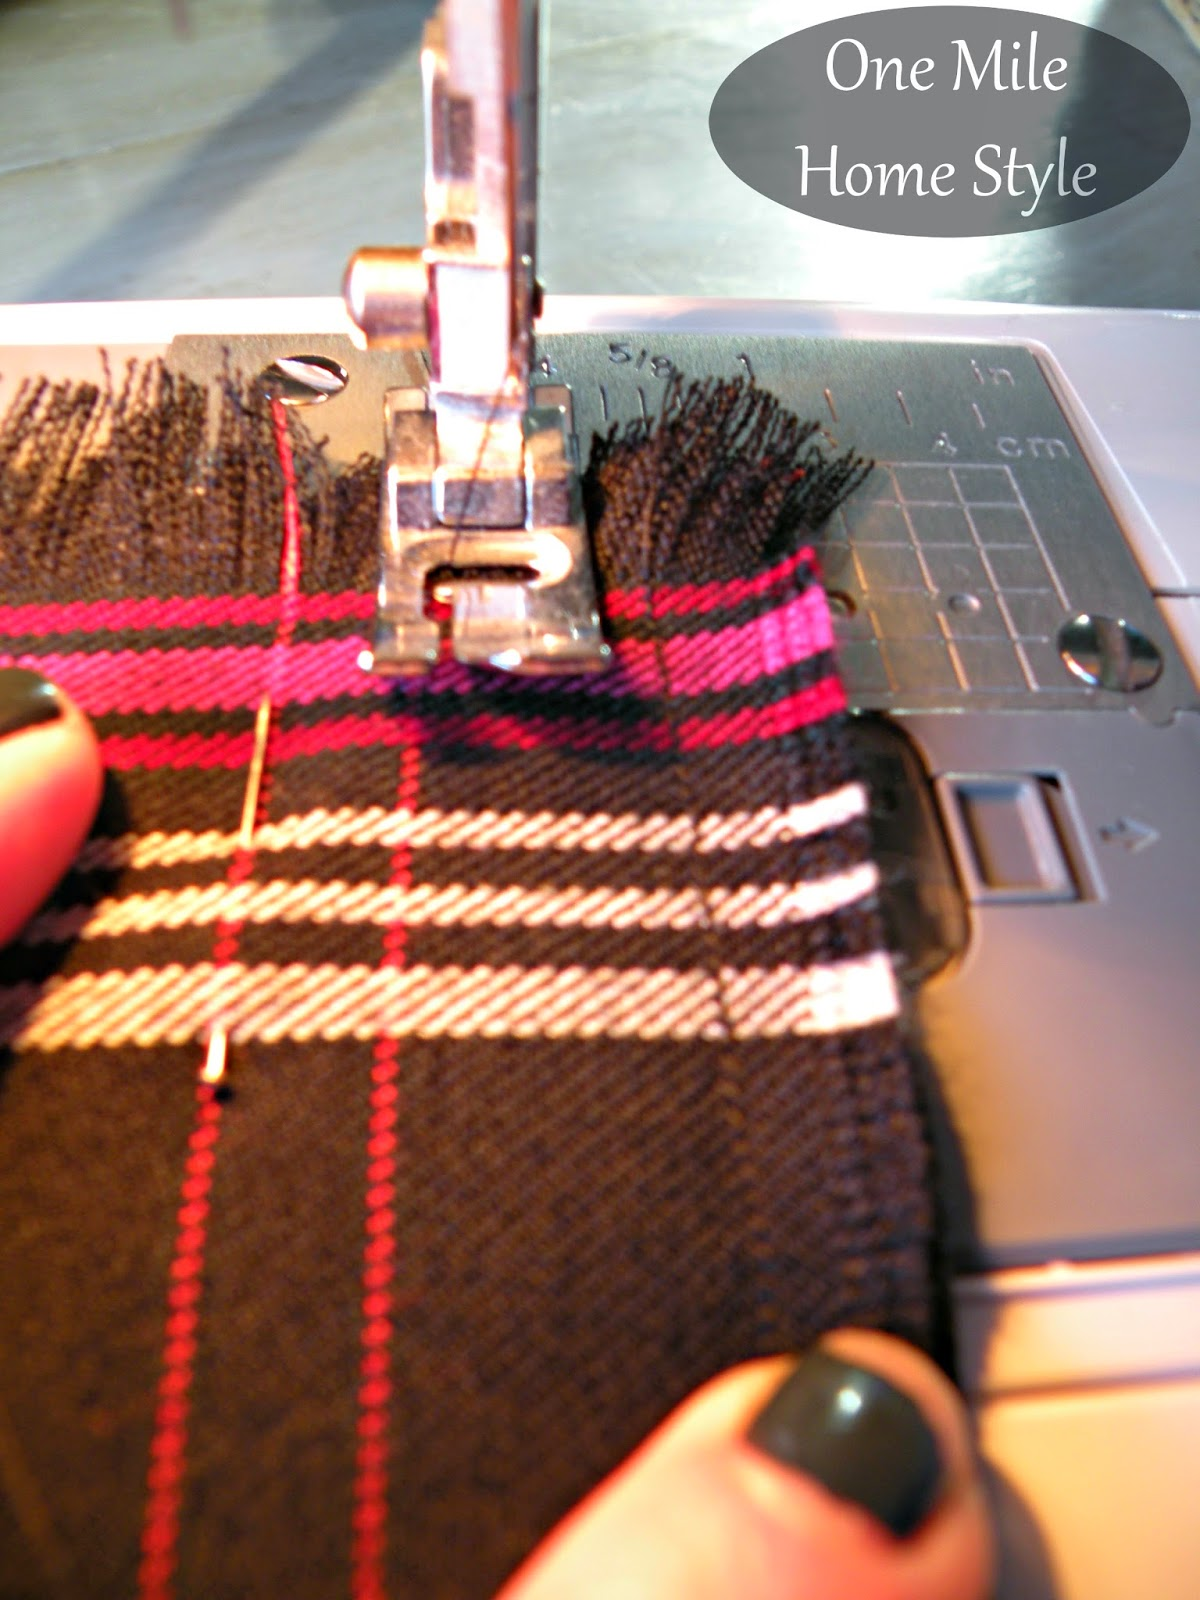 DIY Plaid Blanket Infinity Scarf   One Mile Home Style